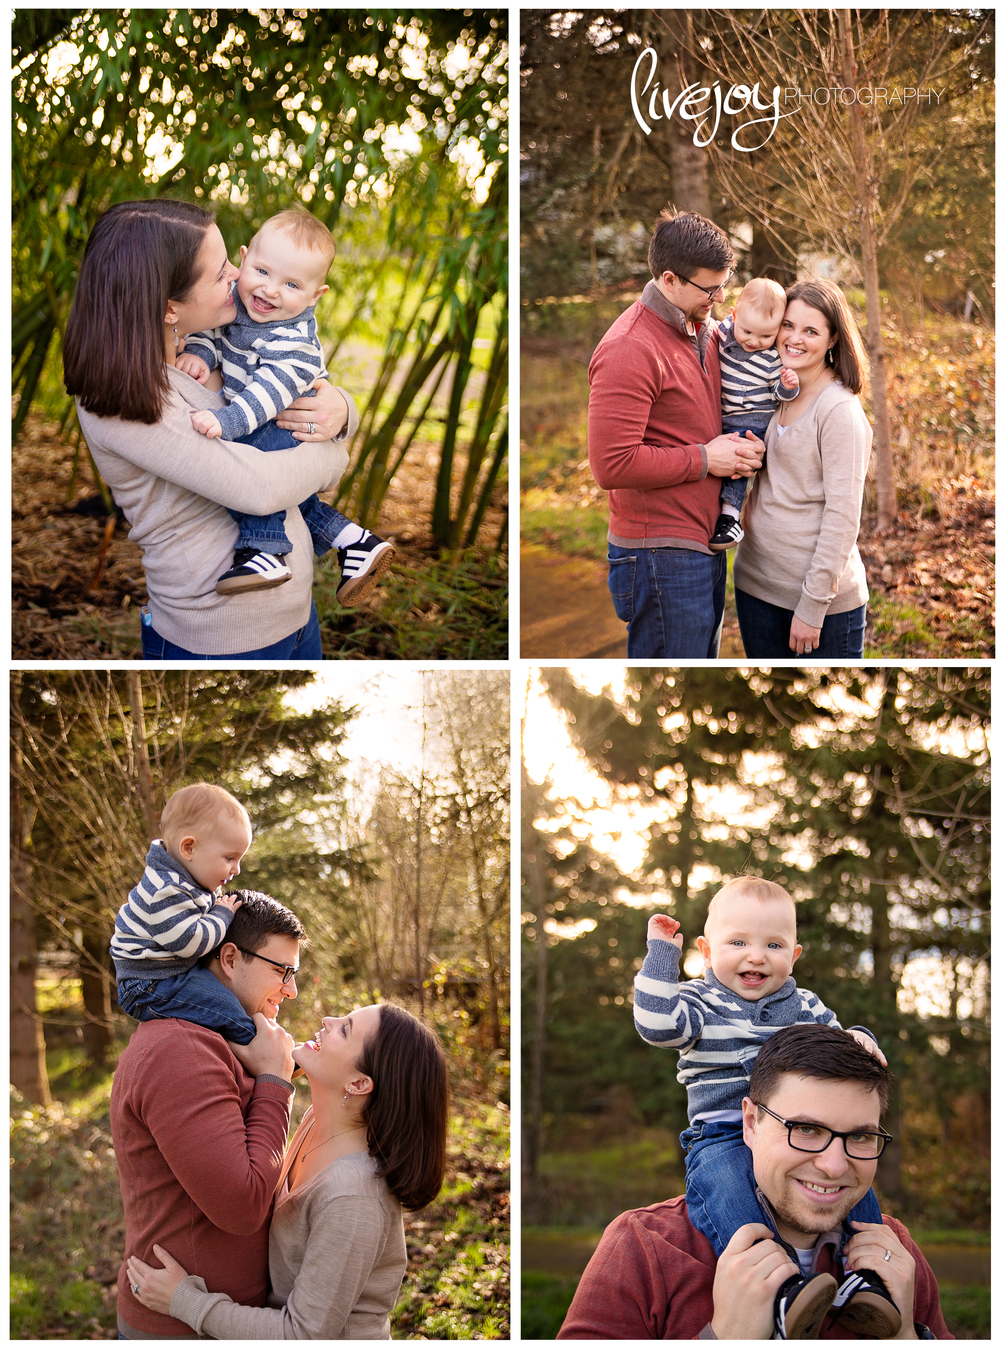 One Year Baby Photos | Oregon | LiveJoy Photography